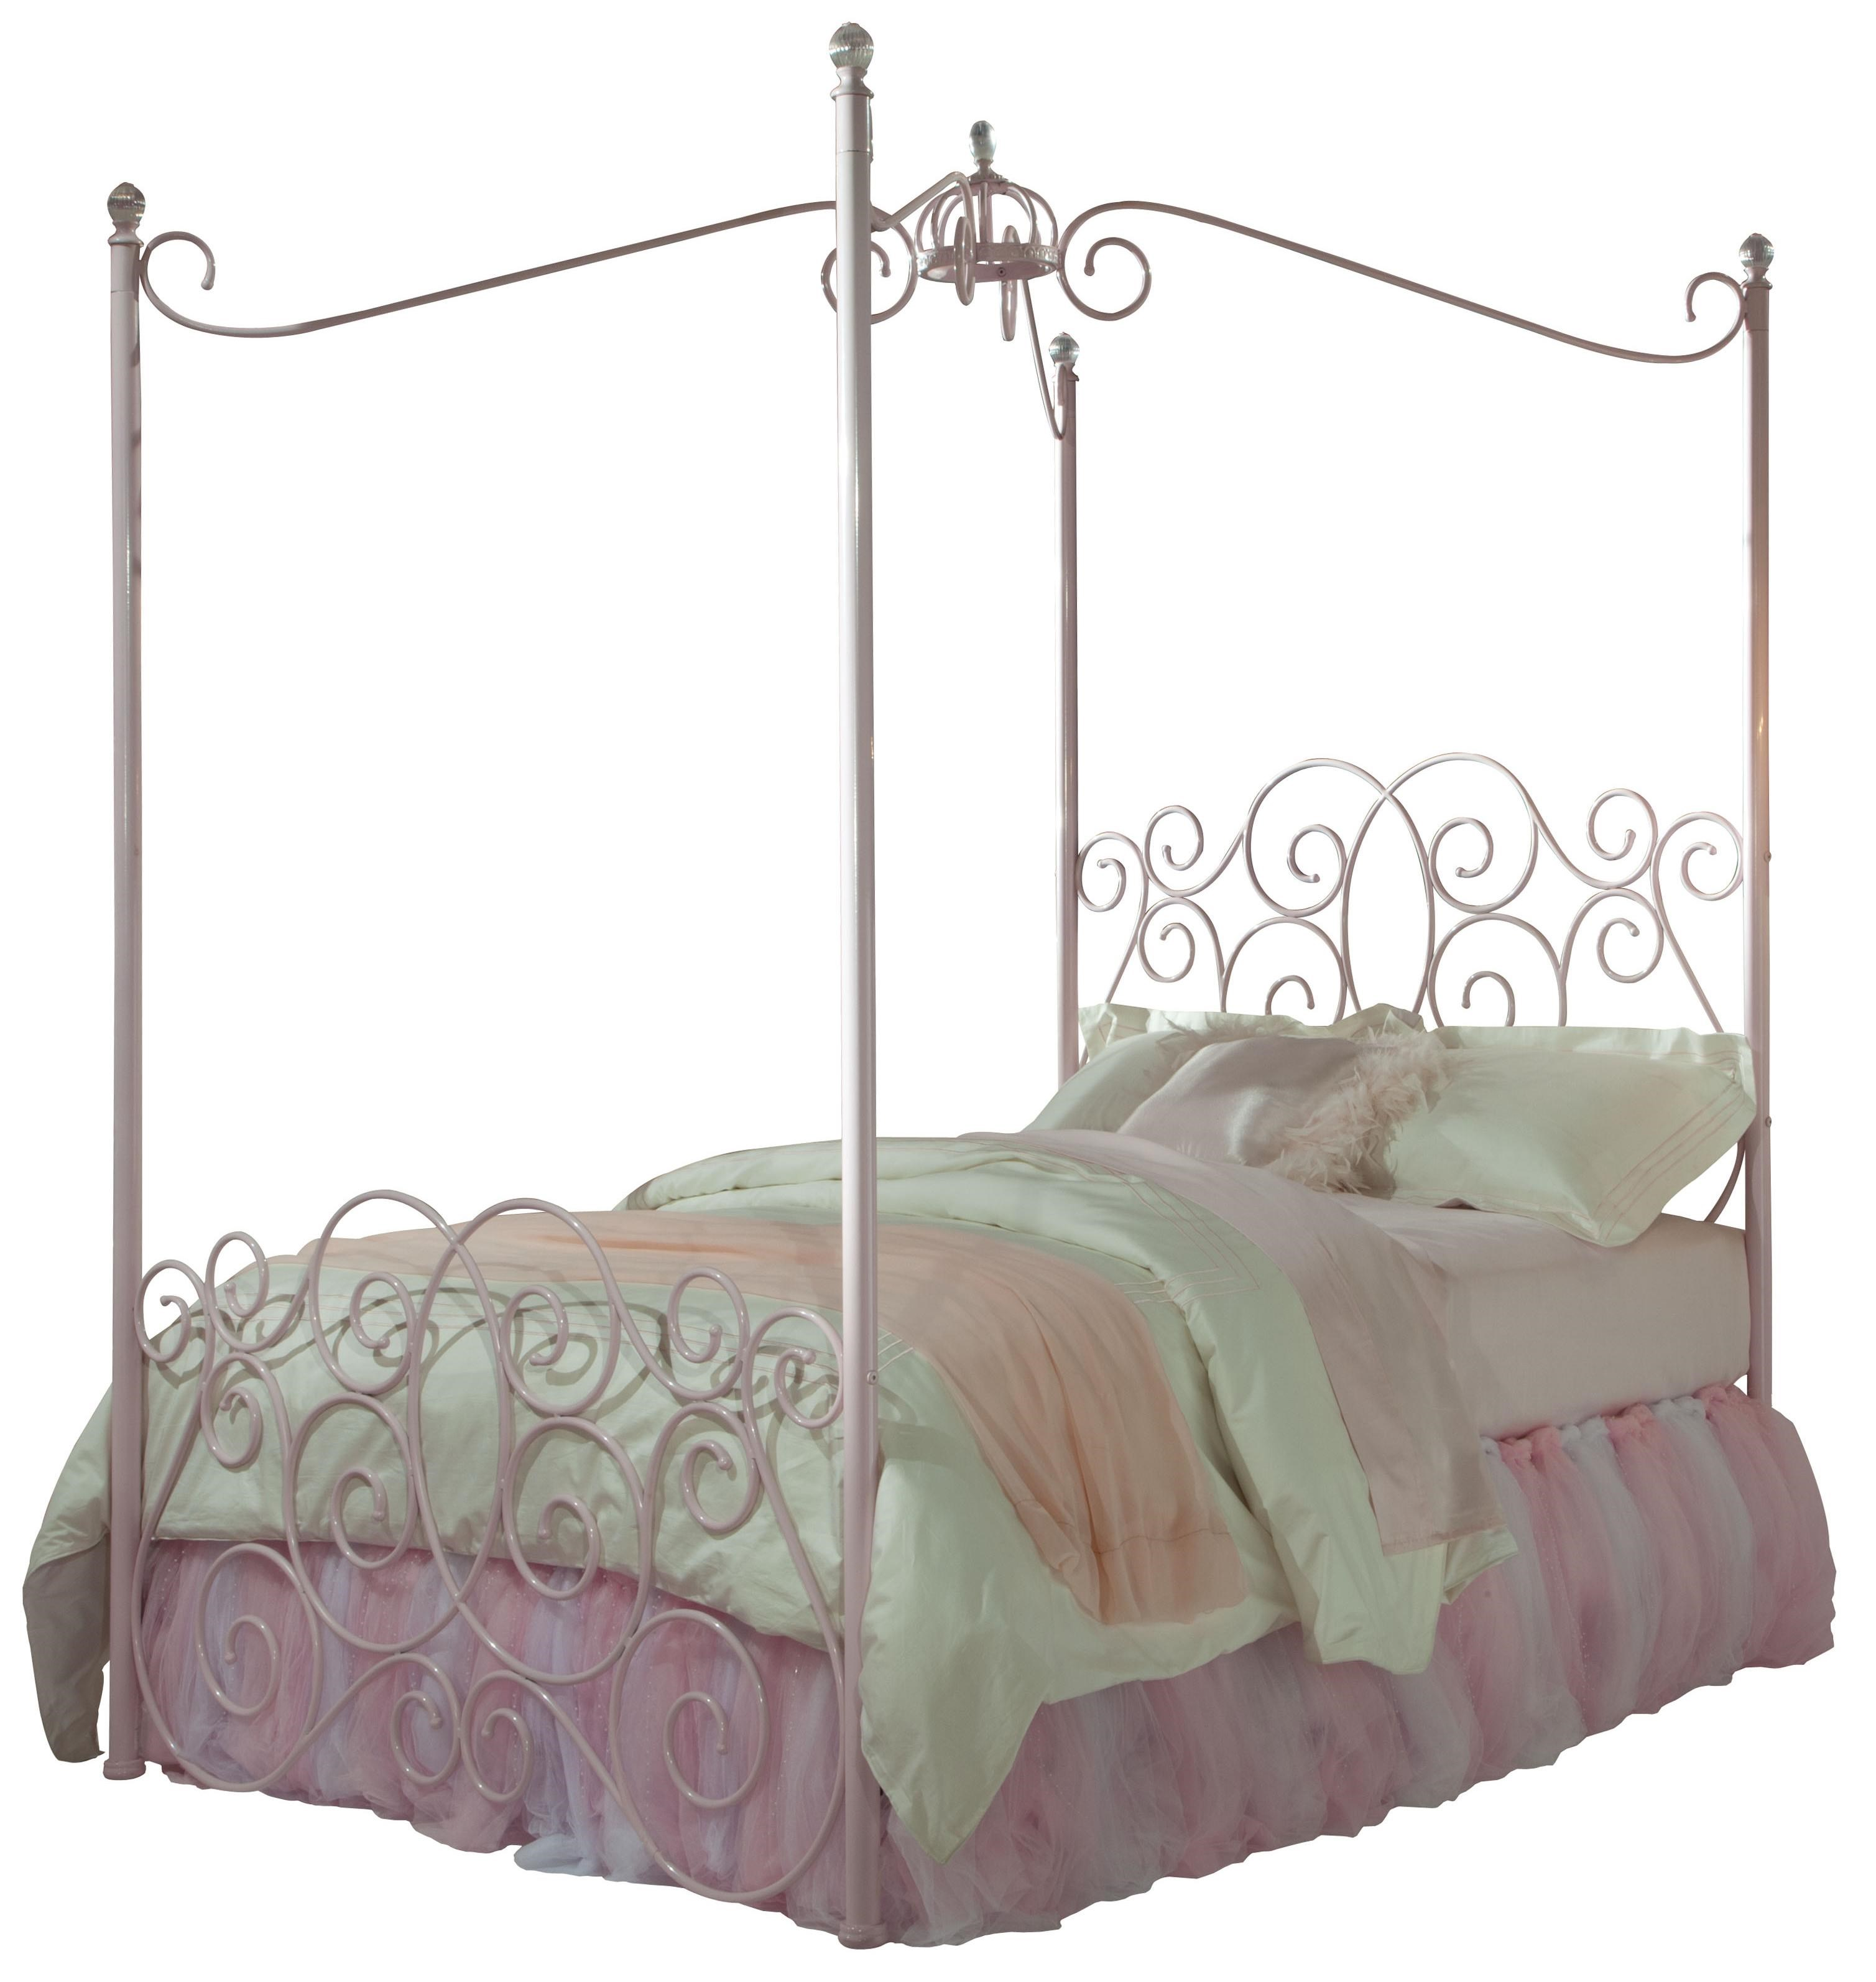 Standard Furniture Princess Canopy Beds Twin Metal Canopy Bed with Clear Post Finials  sc 1 st  Wayside Furniture & Standard Furniture Princess Canopy Beds Twin Metal Canopy Bed with ...